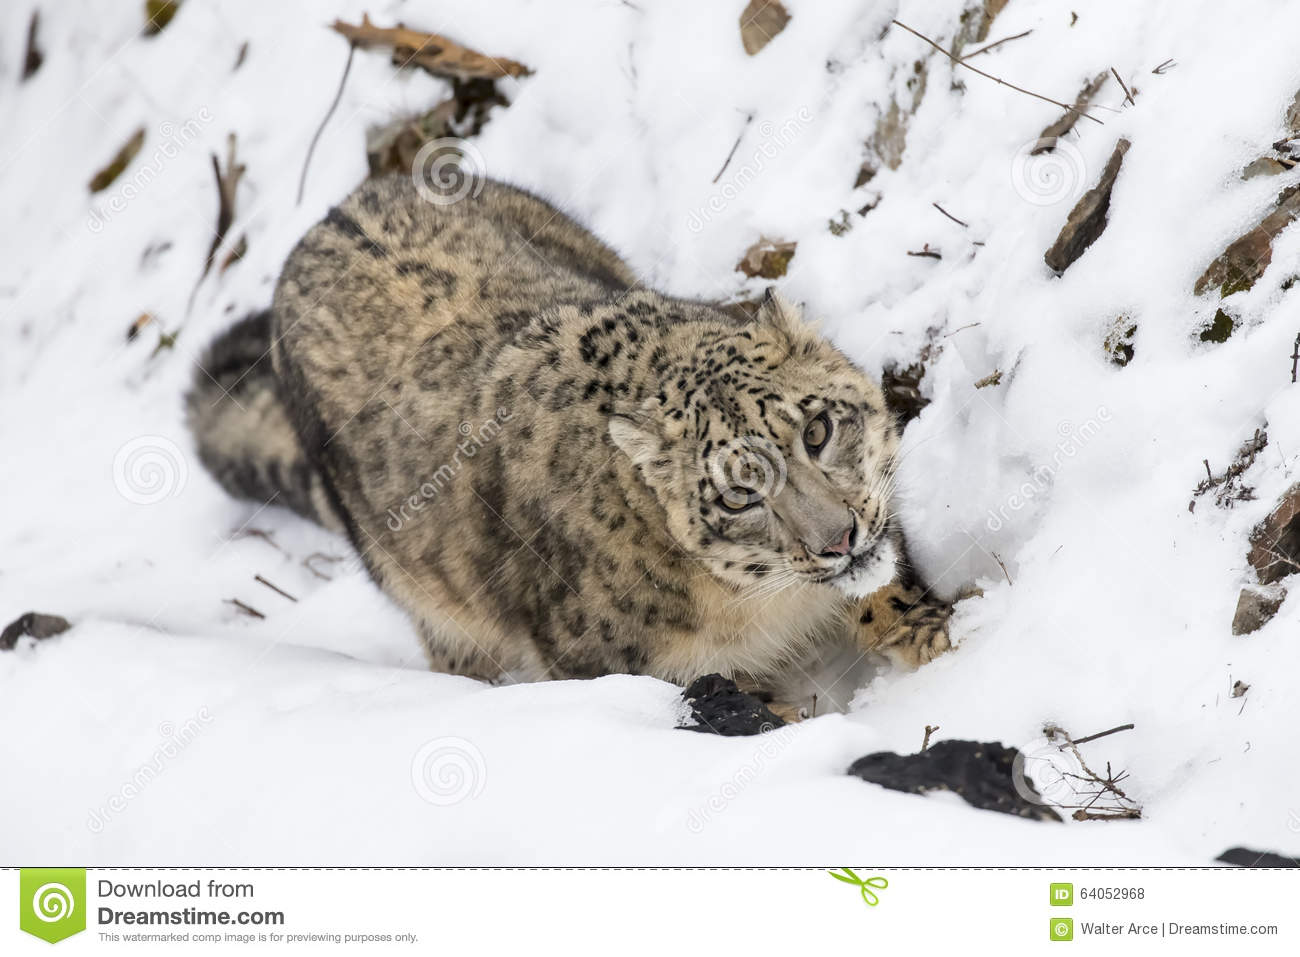 Snow leopard hunting prey - photo#20